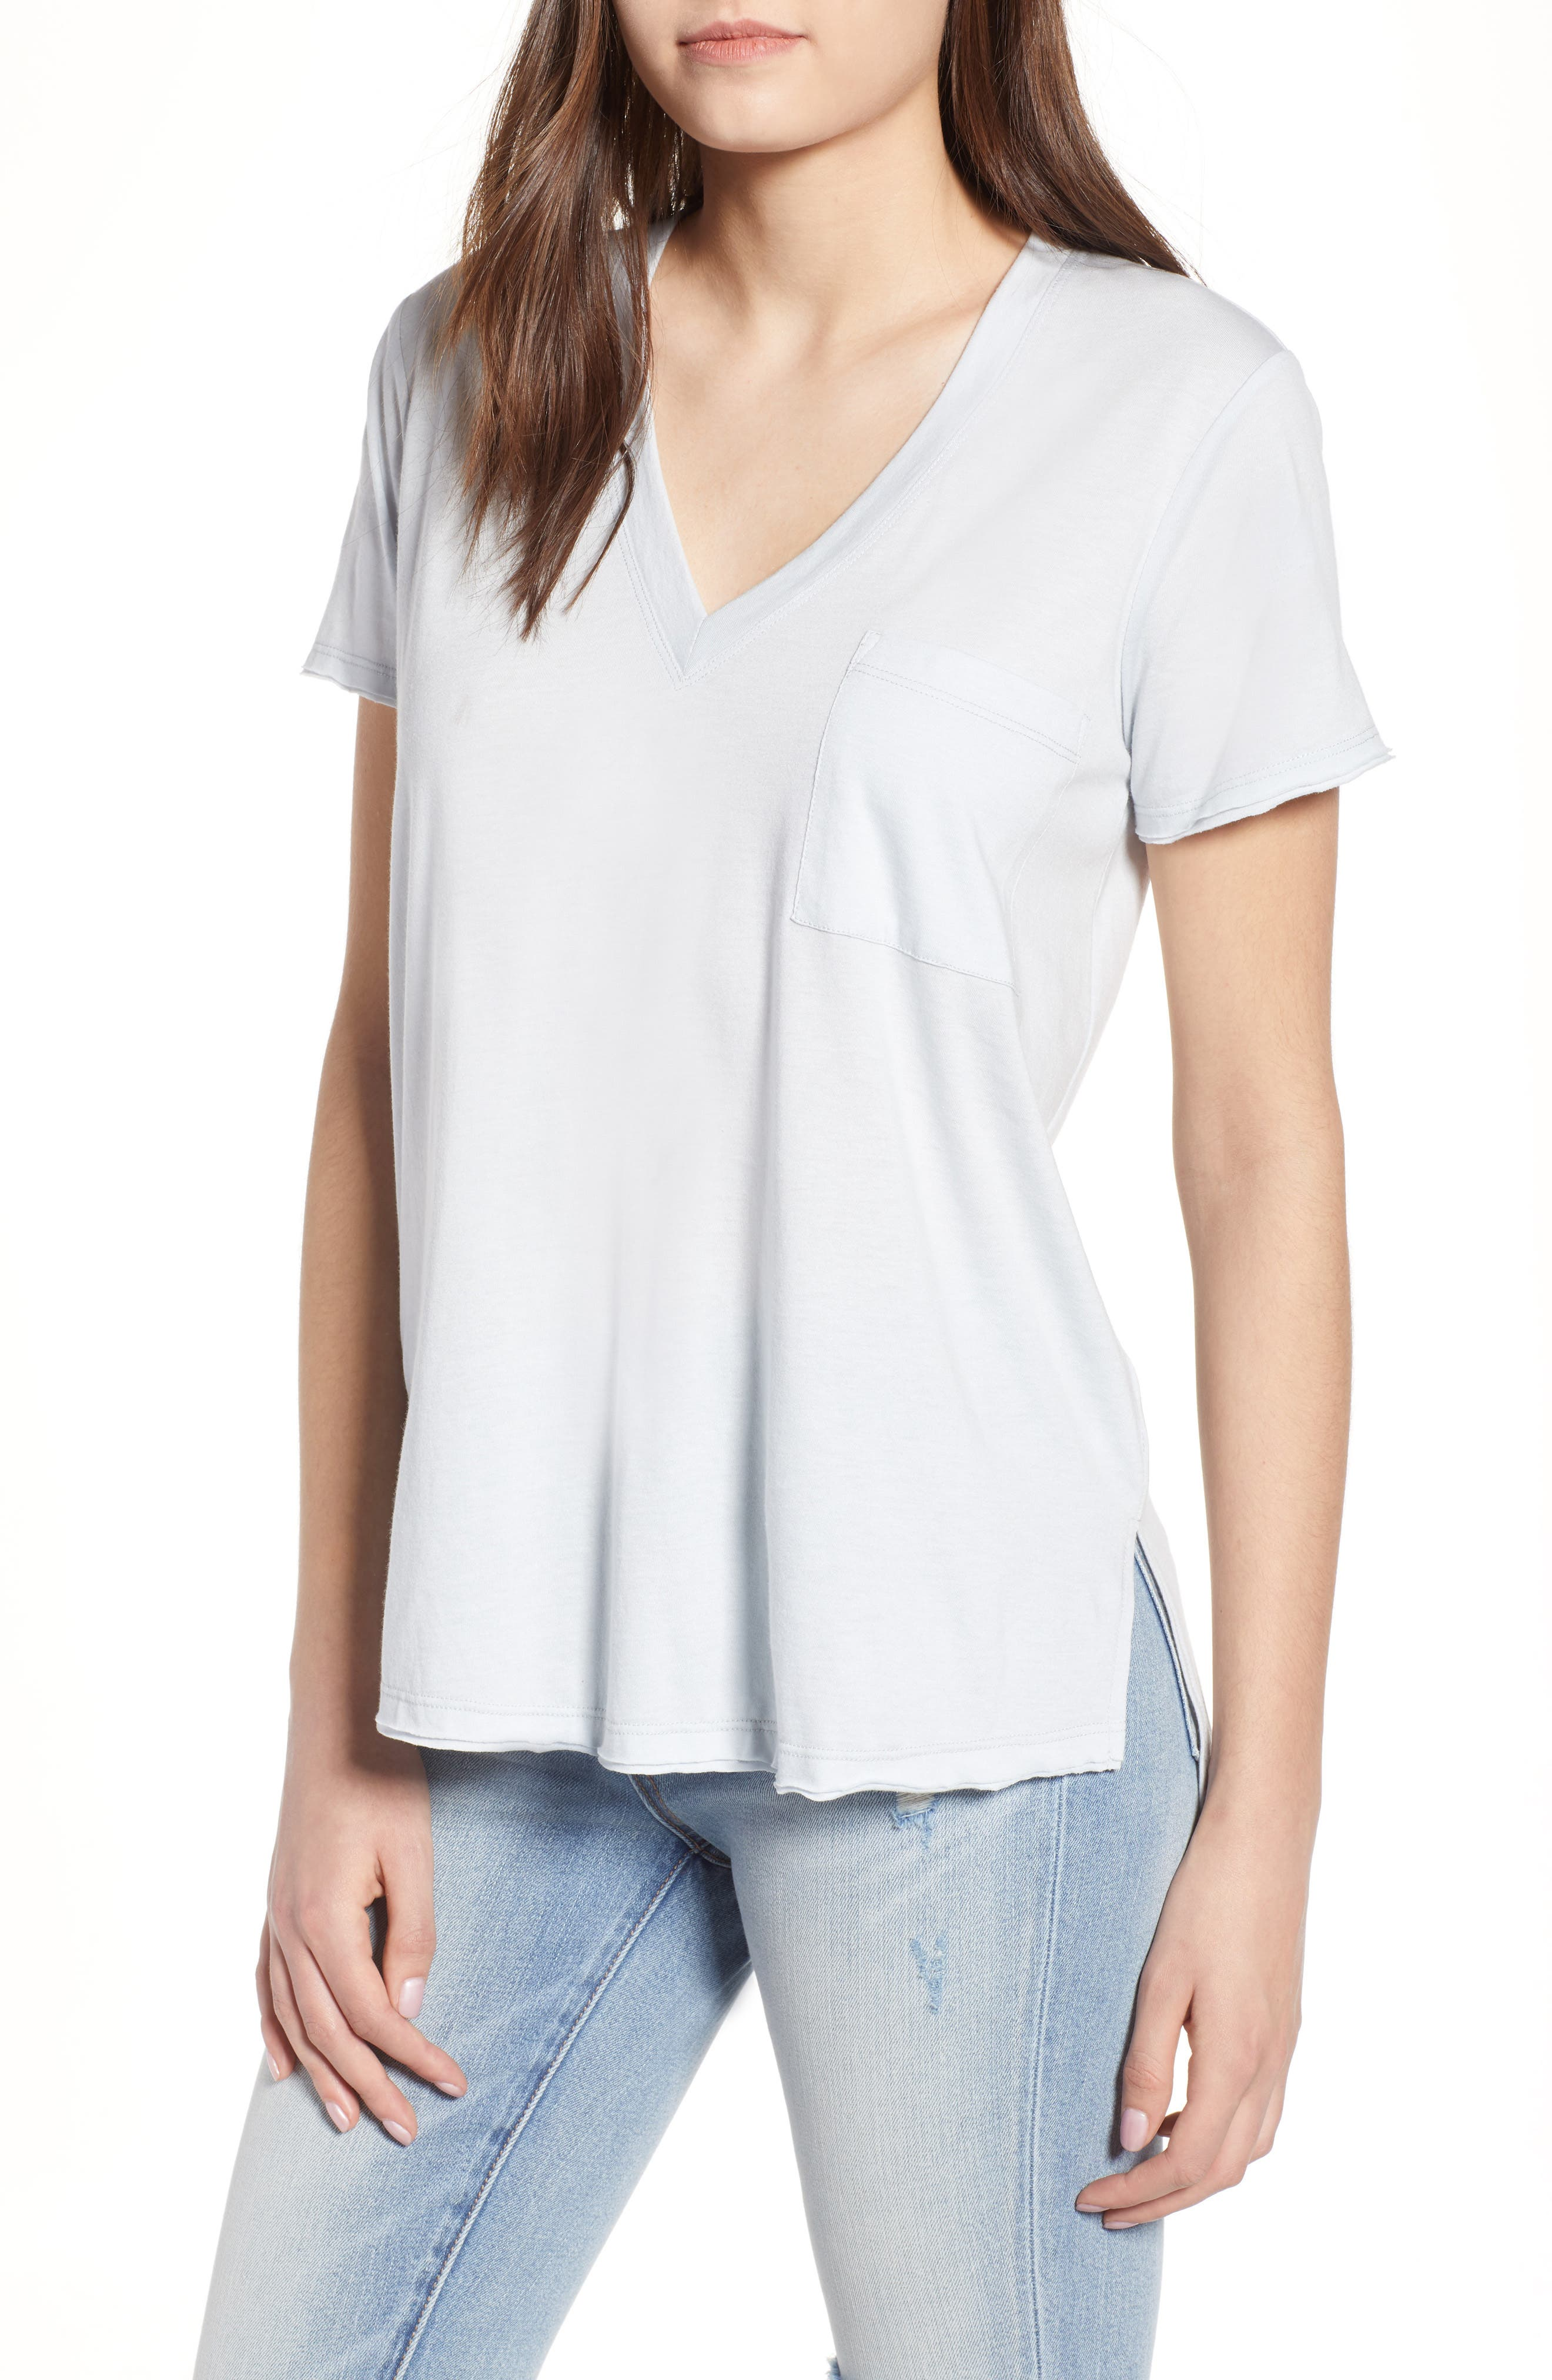 Discount Shopping Online Inexpensive Cheap Online FIND Women's T-Shirt with Pearl Ring Gathered Draping Discounts Cheap Online jwHXhkE